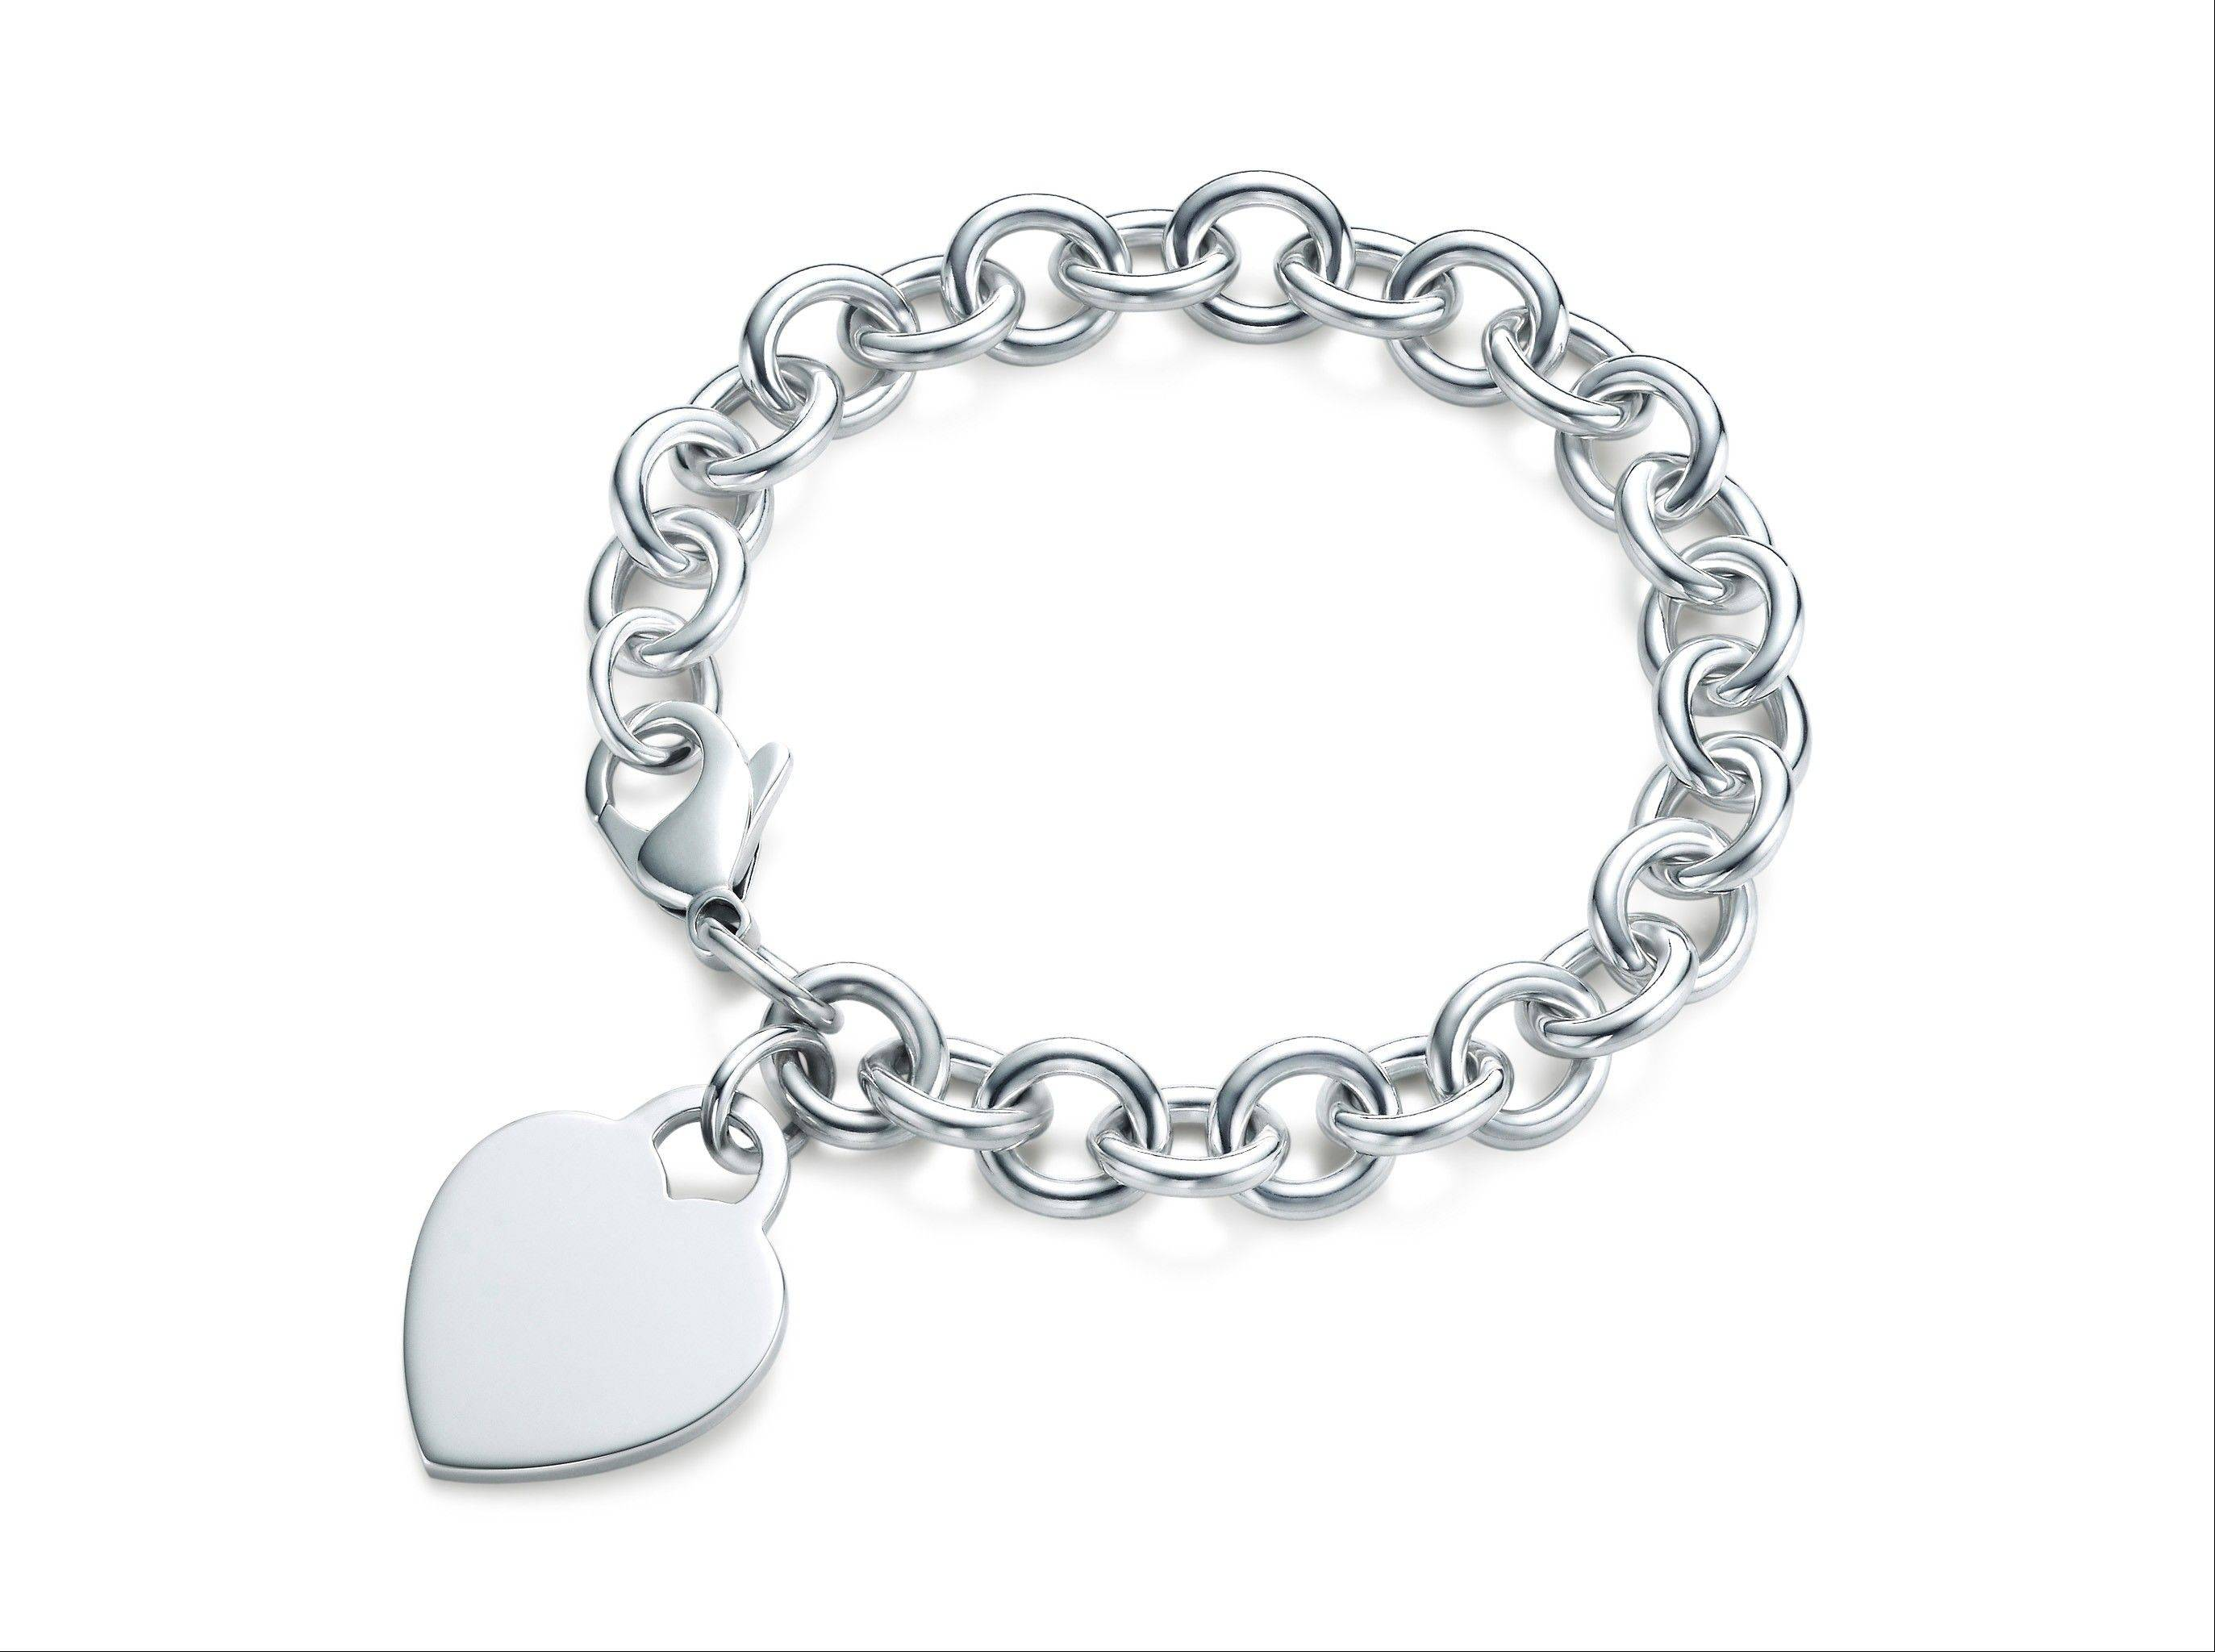 A heart tag bracelet in sterling silver.